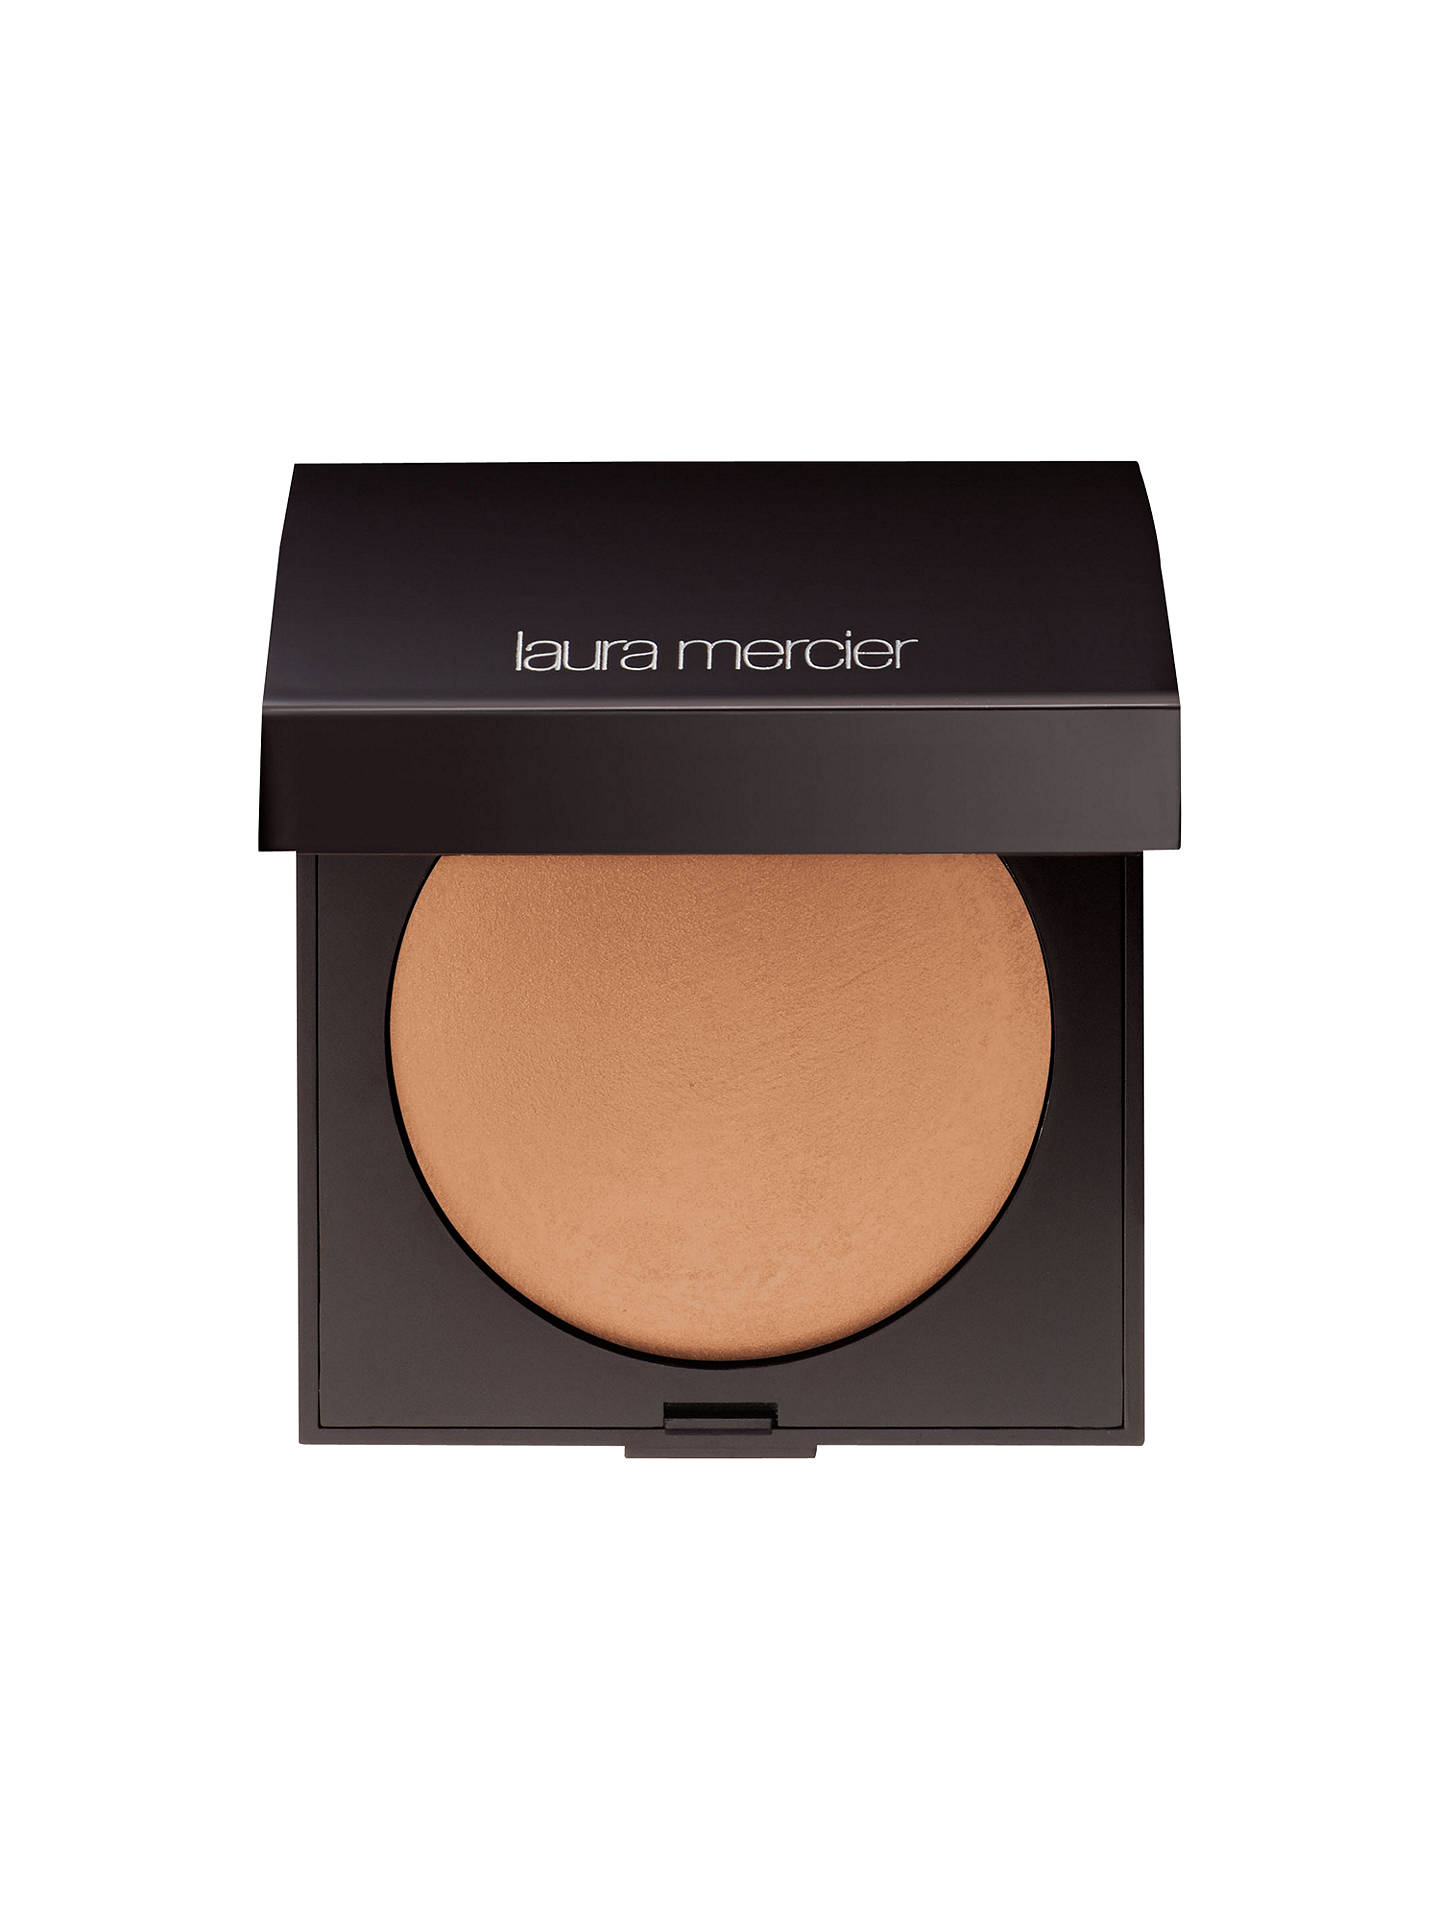 Buy Laura Mercier Matte Radiance Baked Powder, Bronze 03 Online at johnlewis.com